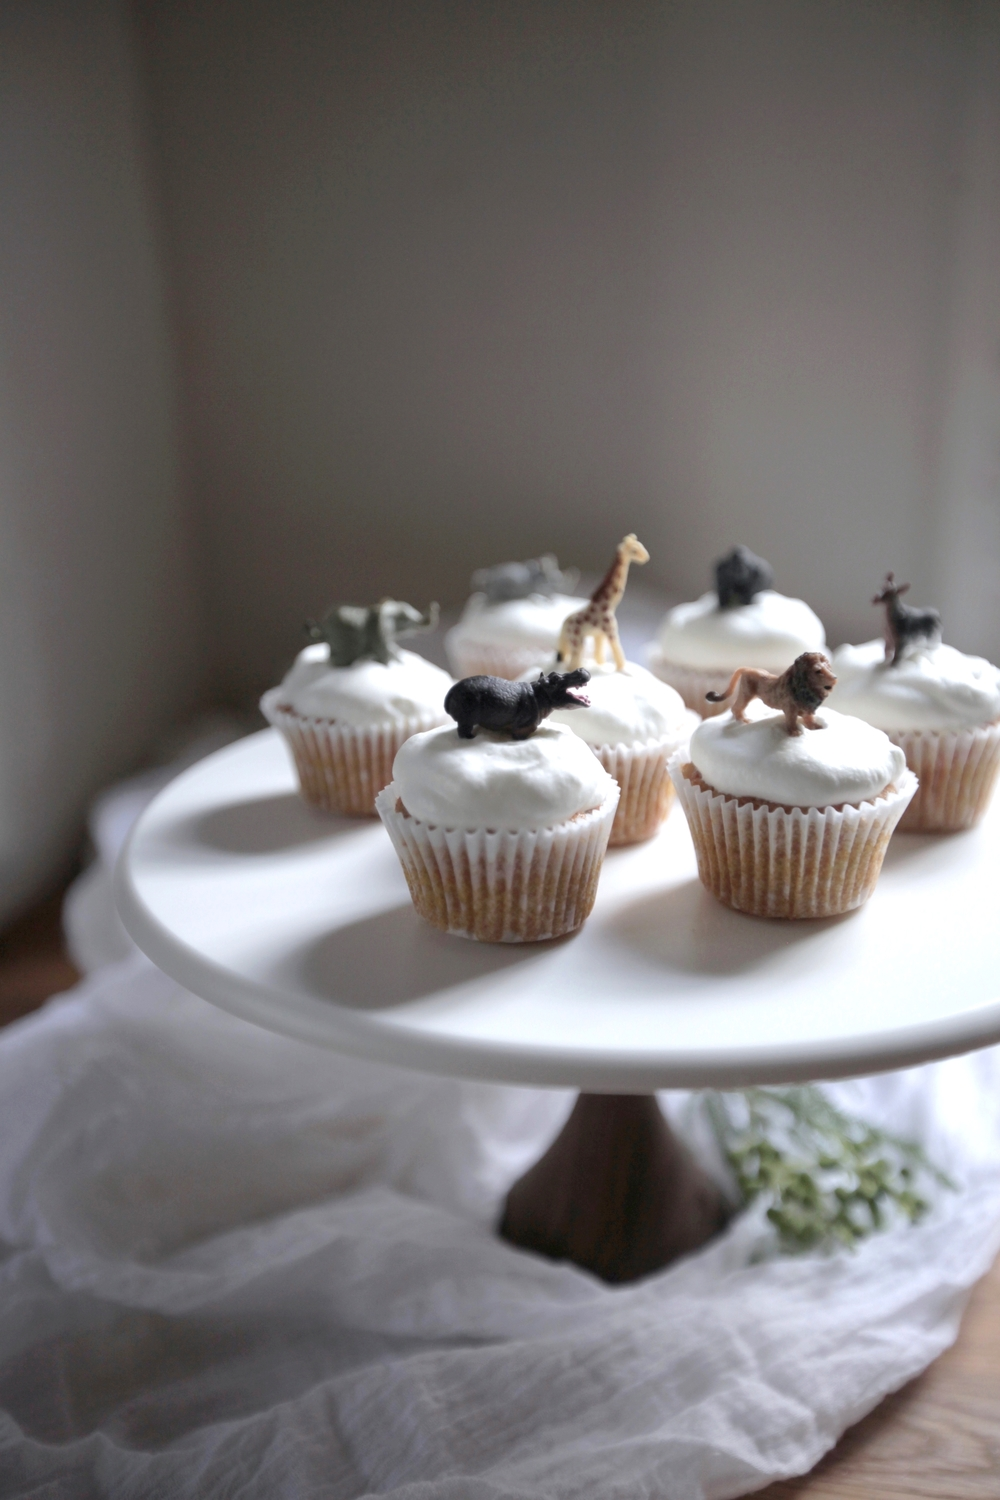 Whisk and whittle healthy carrot cupcakes for kids